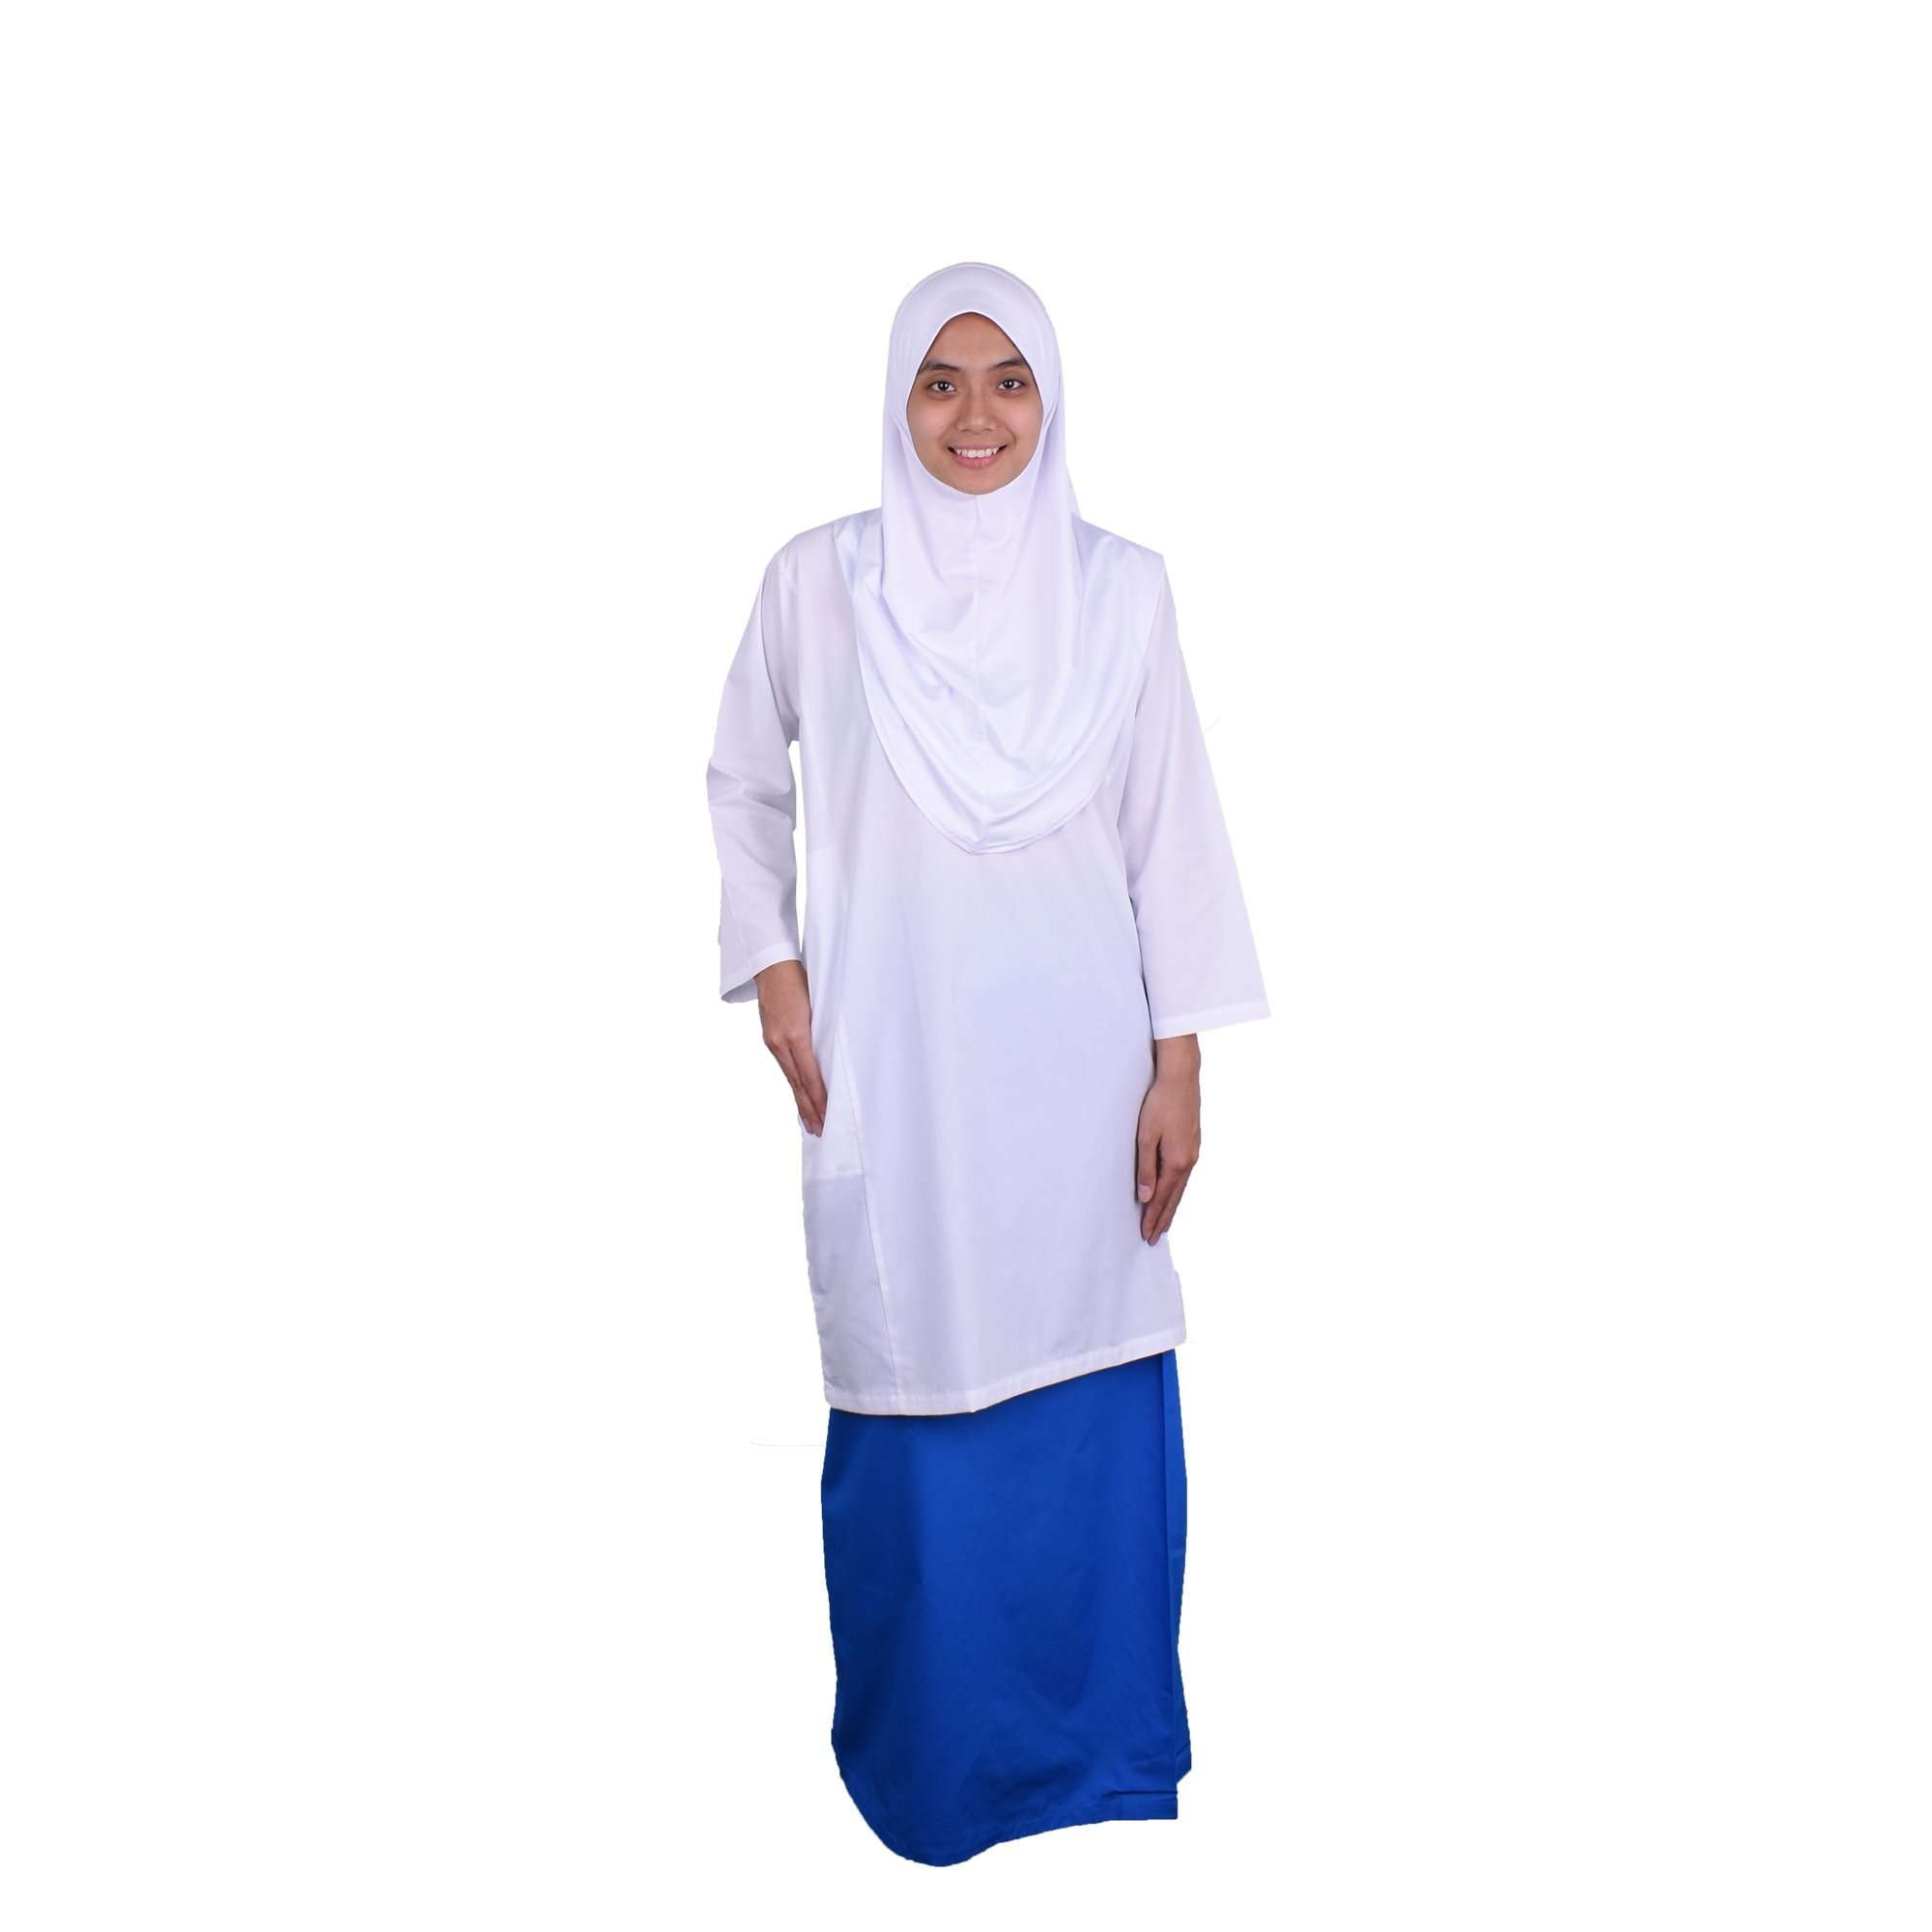 K-SECONDARY GIRL SCHOOL UNIFORM Long Sleeve Blouse - WHITE X956109-1501-W0 : Buy K-Secondary online at CMG.MY